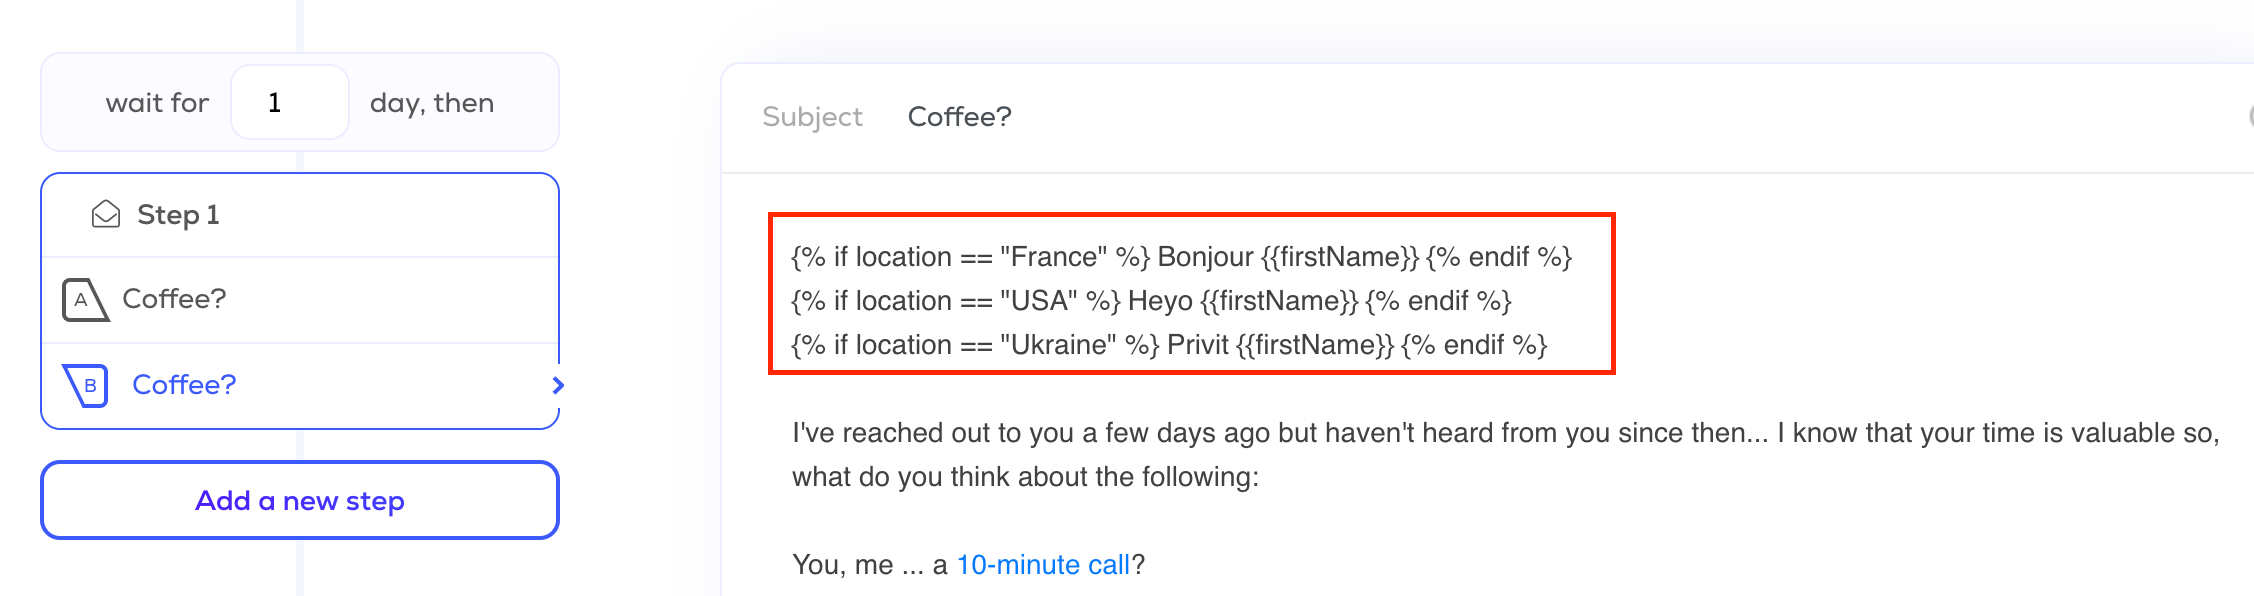 Text personalization cold emails